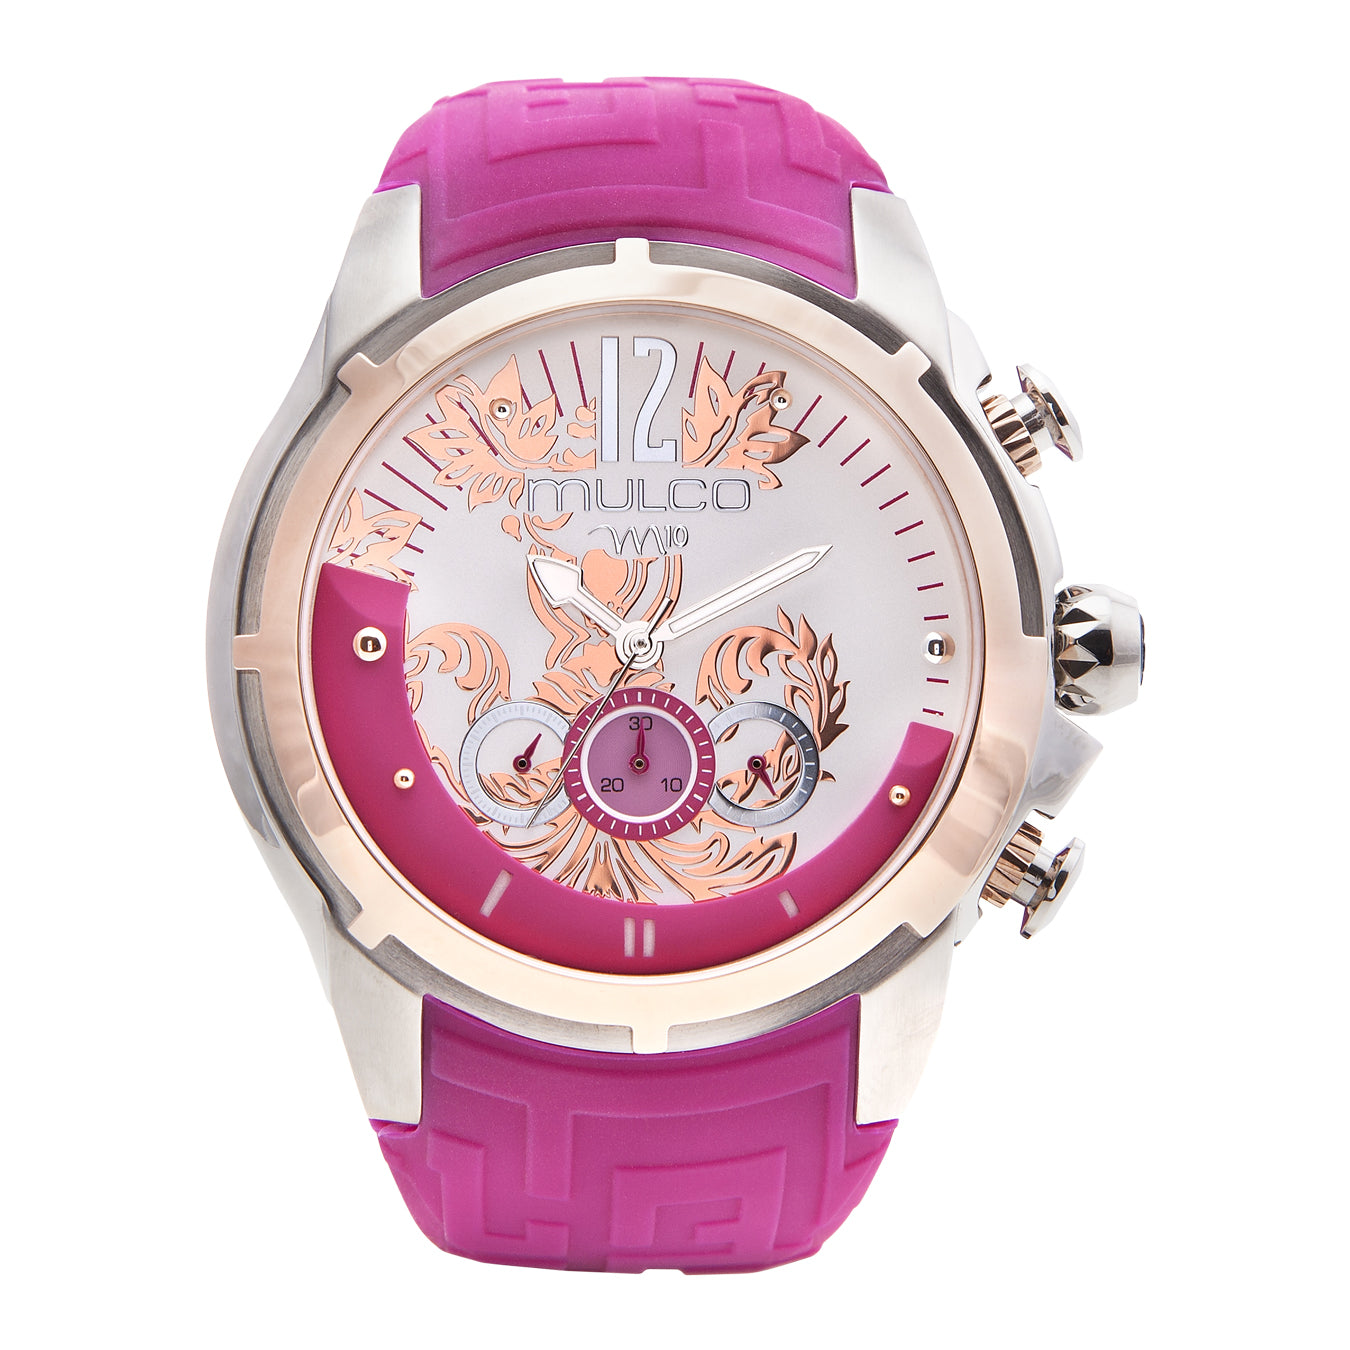 Womens Watches | Fucsia Silicone Band | Rose Gold accents | Water Resistant